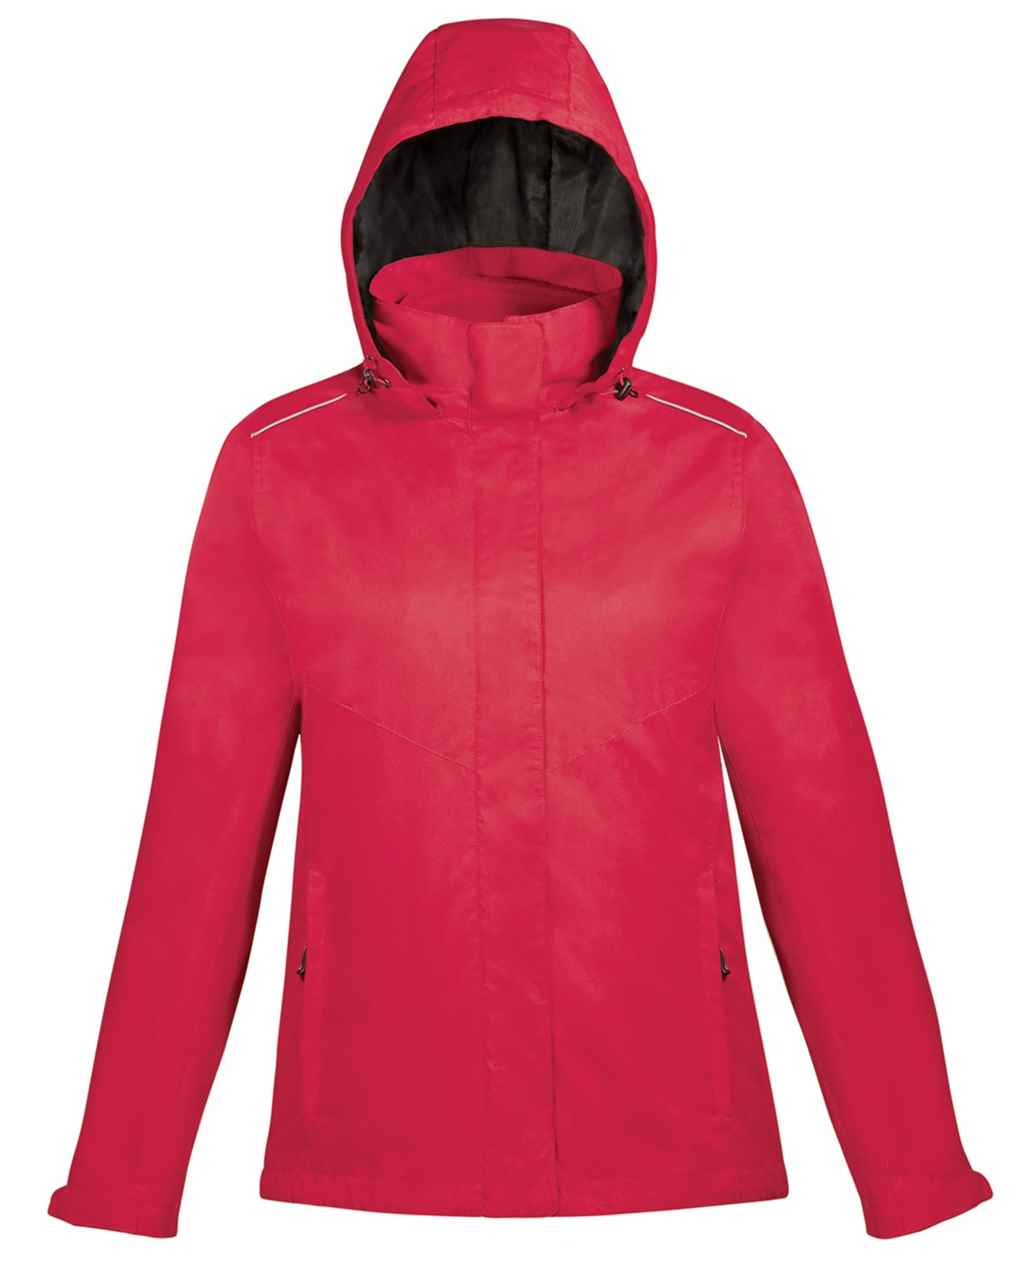 Picture of Core365 Ladies' 3-In-1 Jackets With Fleece Liner